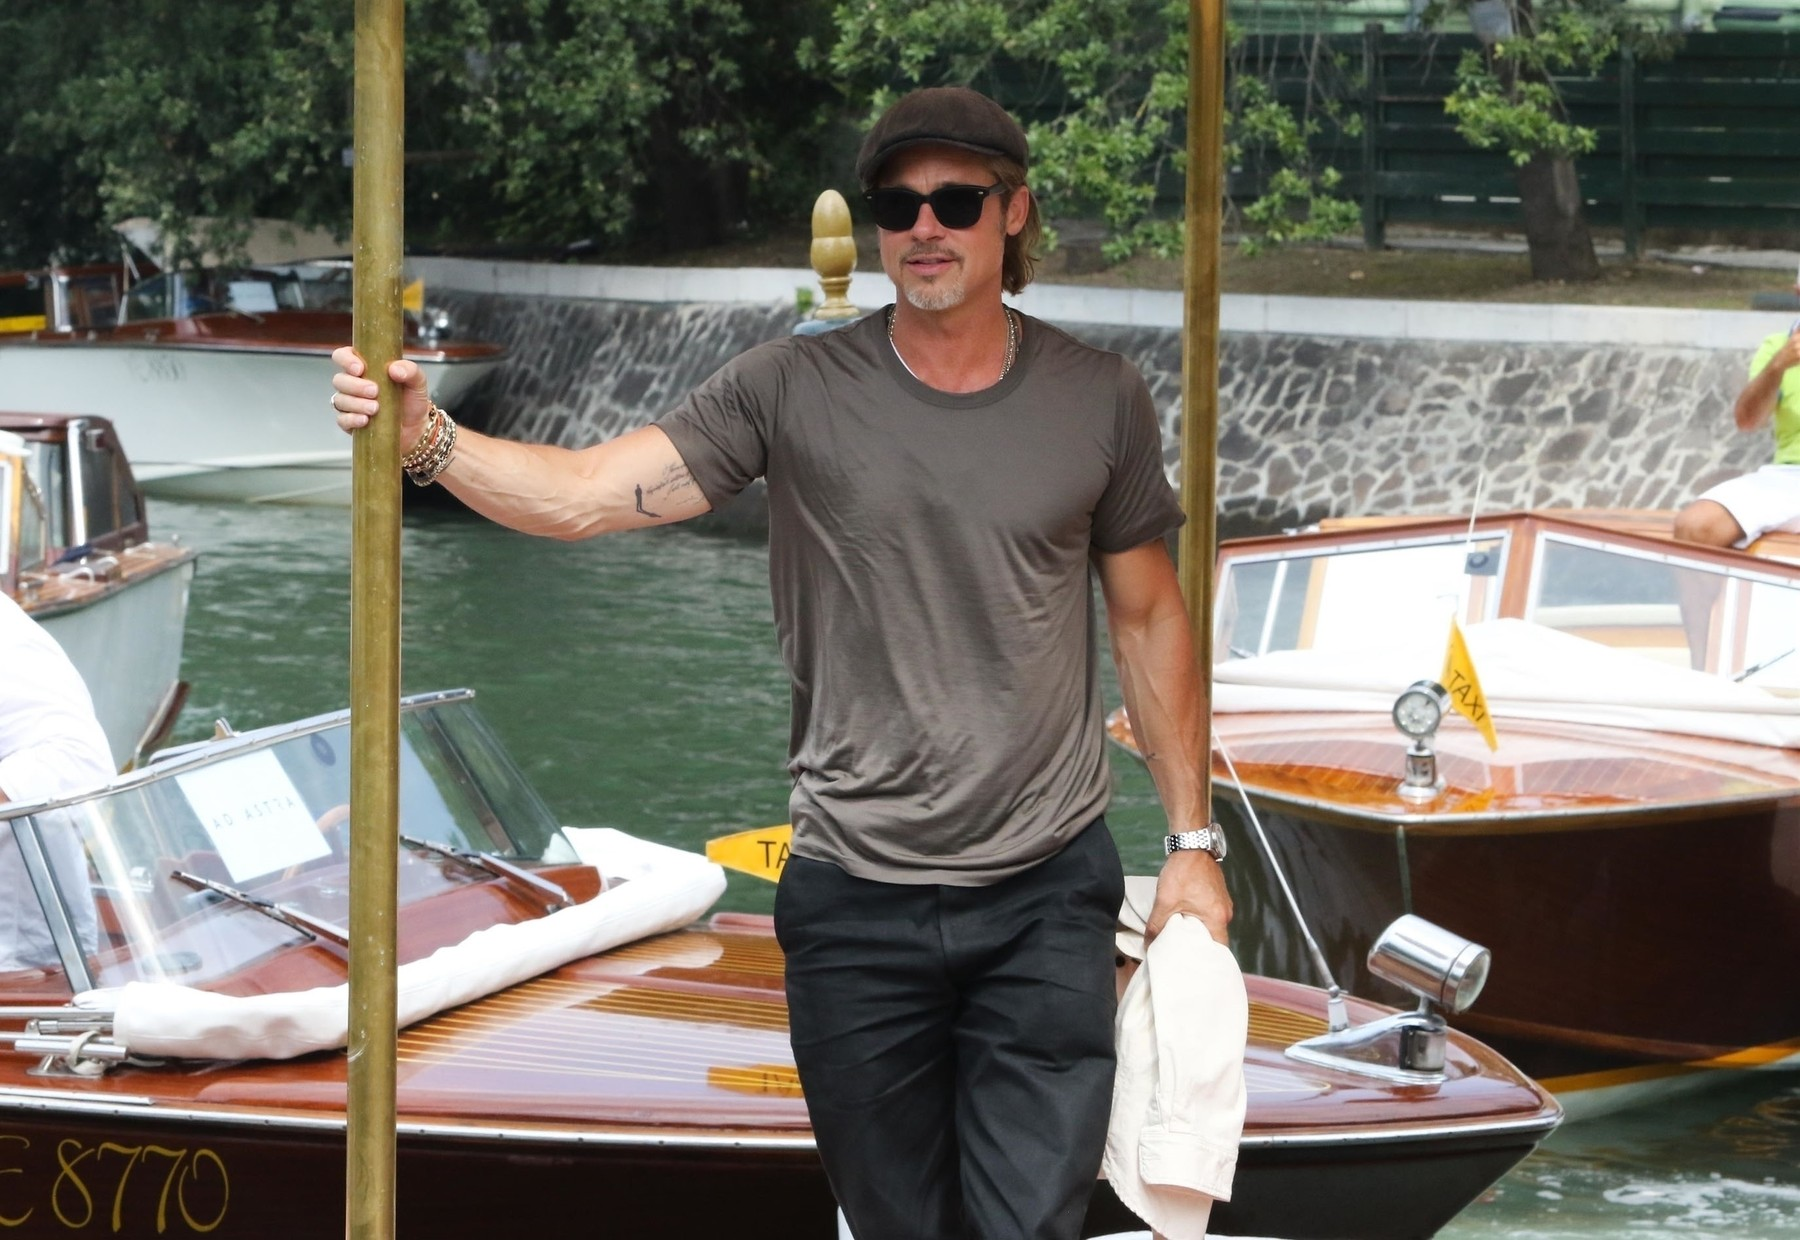 Venice, ITALY  - The Hollywood actor Brad Pitt arrives via taxi boat to the Hotel Excelsior in Venice to attend the 76th Venice Film Festival.  *UK Clients - Pictures Containing Children Please Pixelate Face Prior To Publication*, Image: 467676163, License: Rights-managed, Restrictions: RIGHTS: WORLDWIDE EXCEPT IN ITALY, Model Release: no, Credit line: Profimedia, Backgrid UK